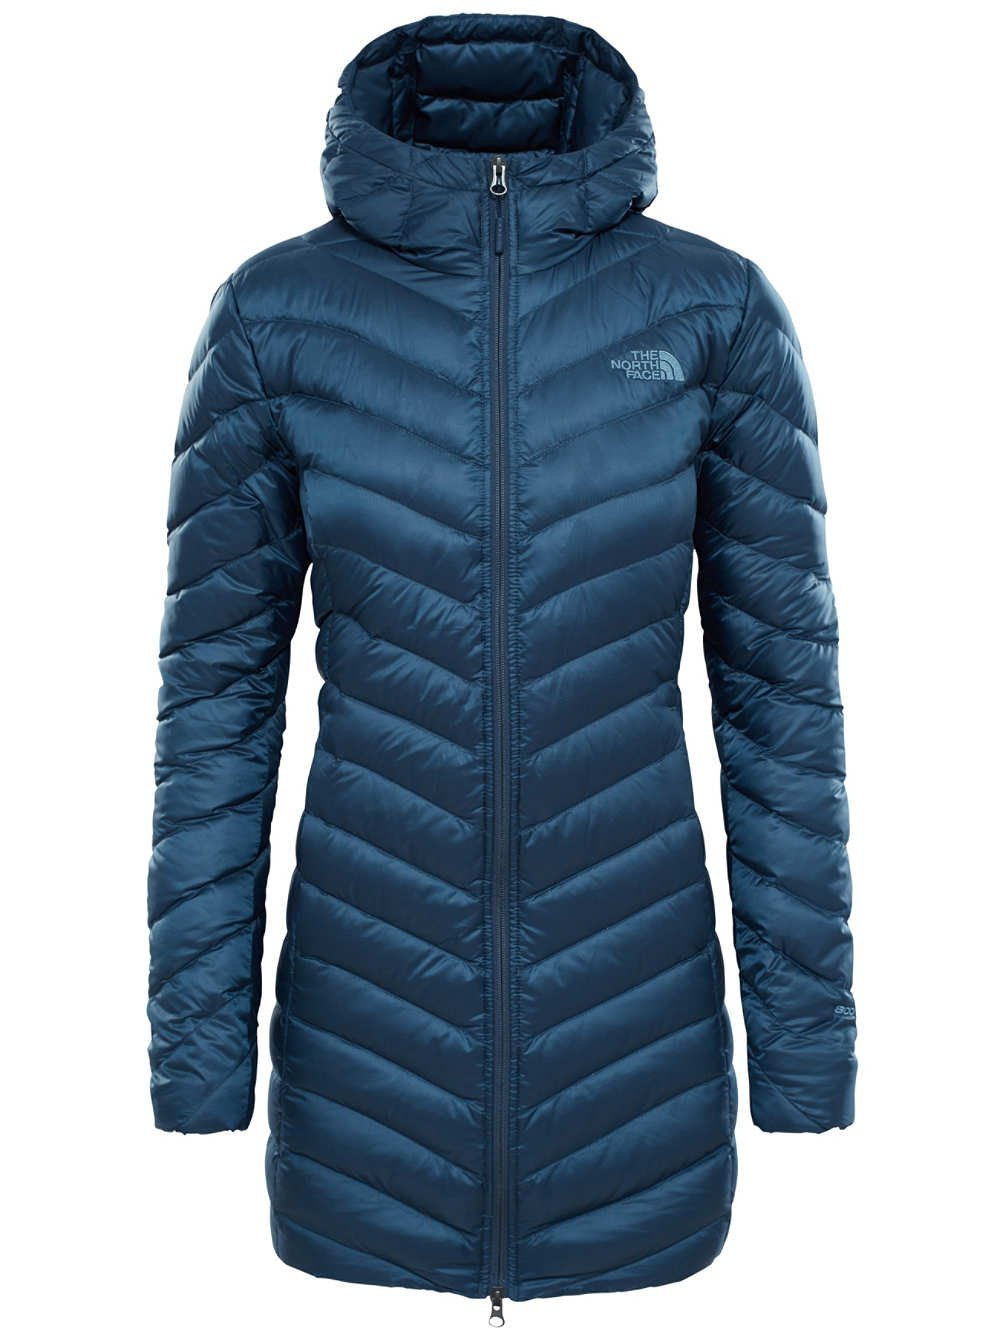 The North Face W Trevail Parka Chaqueta, Mujer